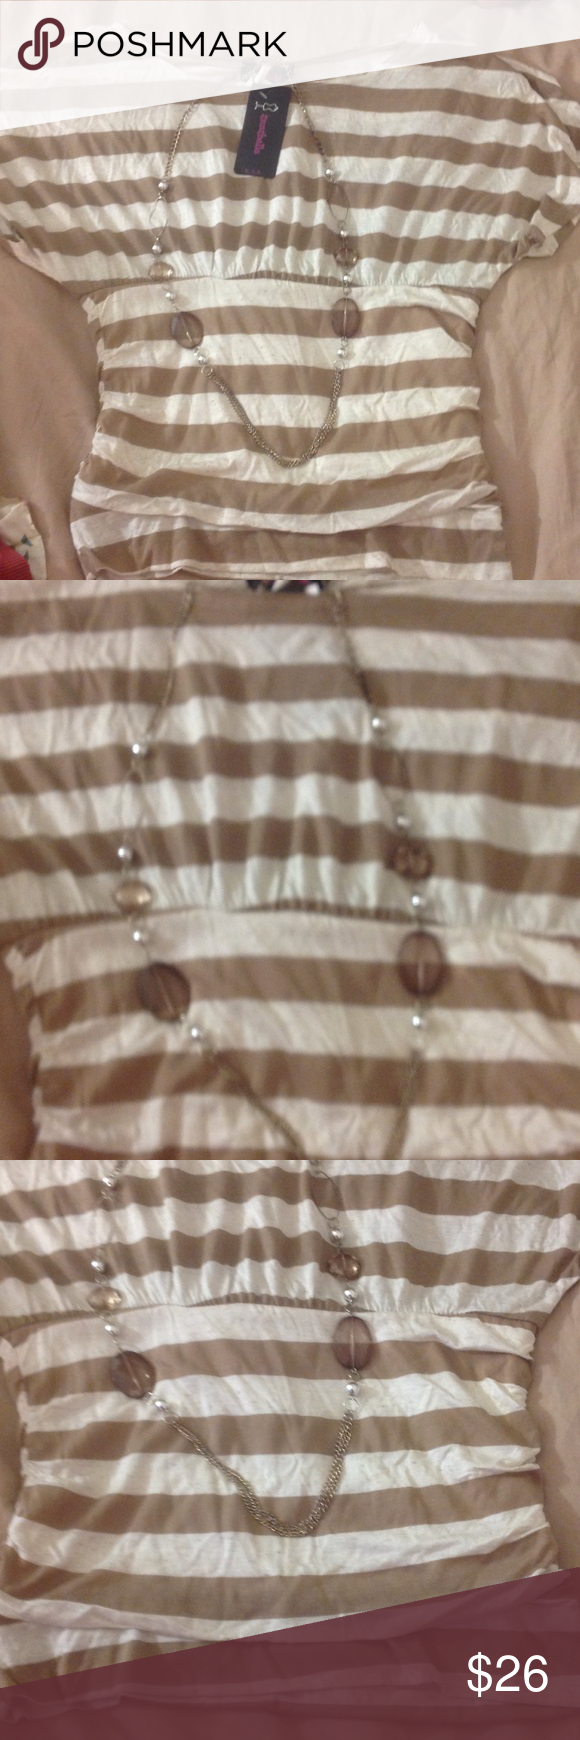 Beautiful brand new striped Blouse with necklace This is a brand-new striped blouse cinched at the waist with the necklace attached although it can be removed to wear separately. Soft material   Brand is Annabella not Guess Guess Tops Blouses